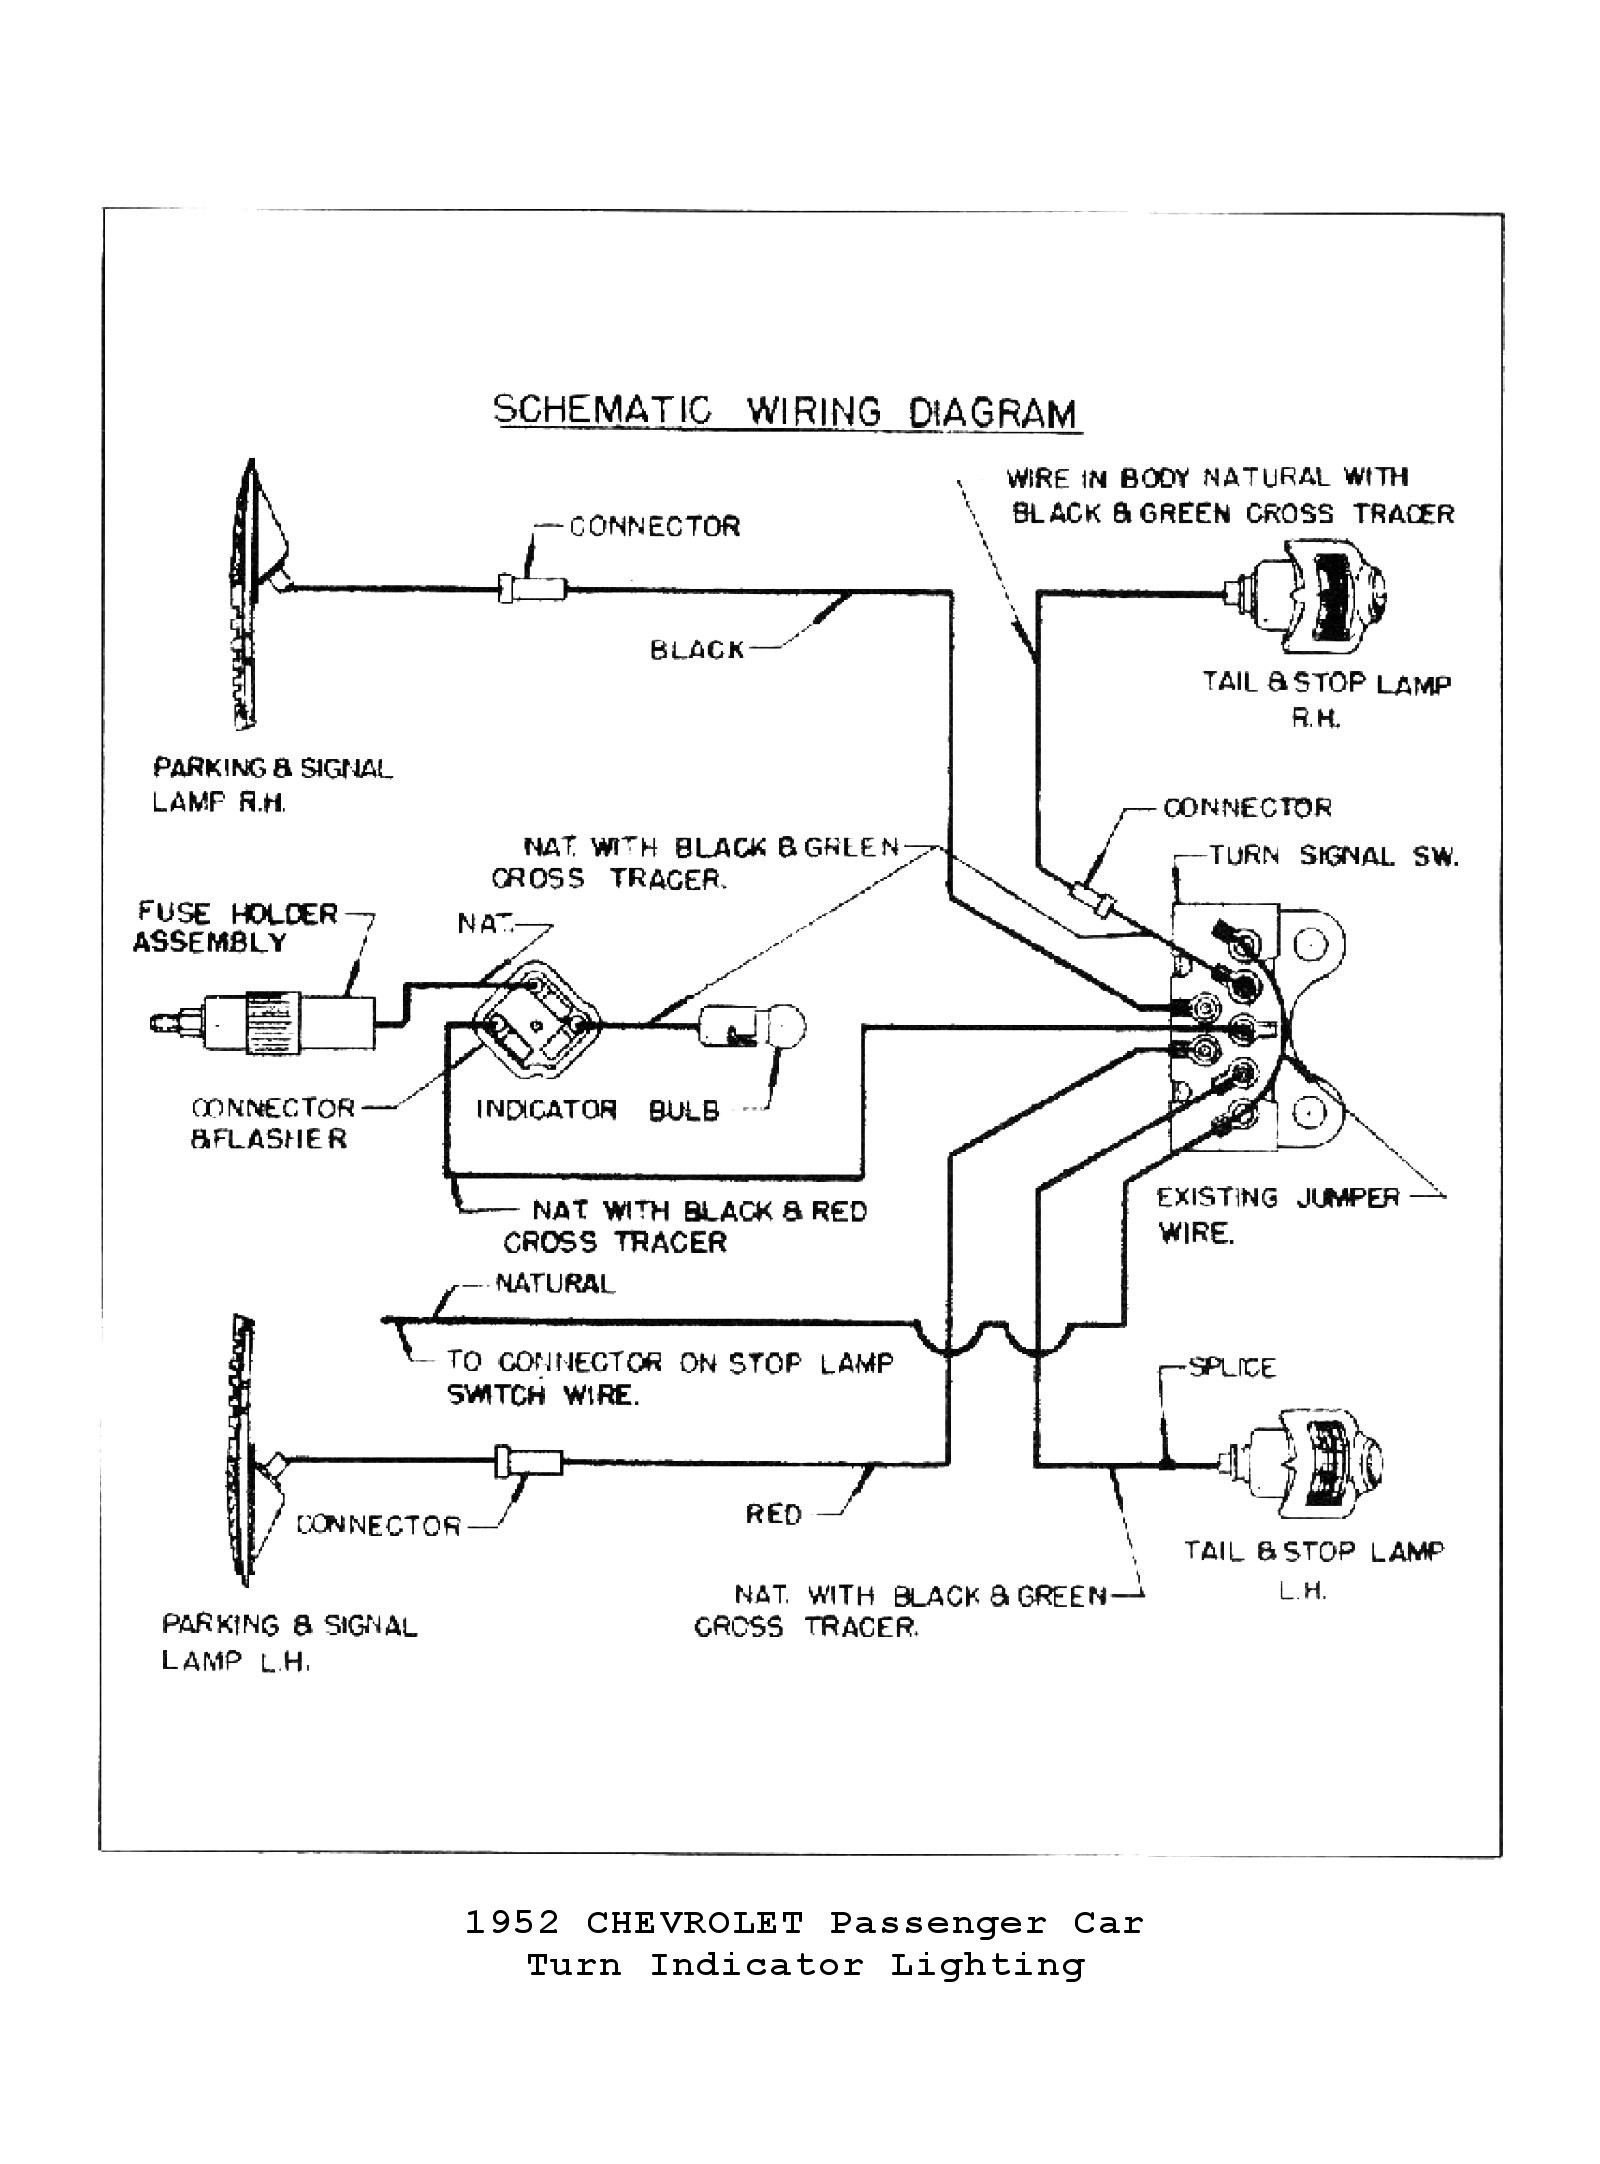 Car Signal Light Wiring Diagram Chevy Wiring Diagrams Of Car Signal Light Wiring Diagram